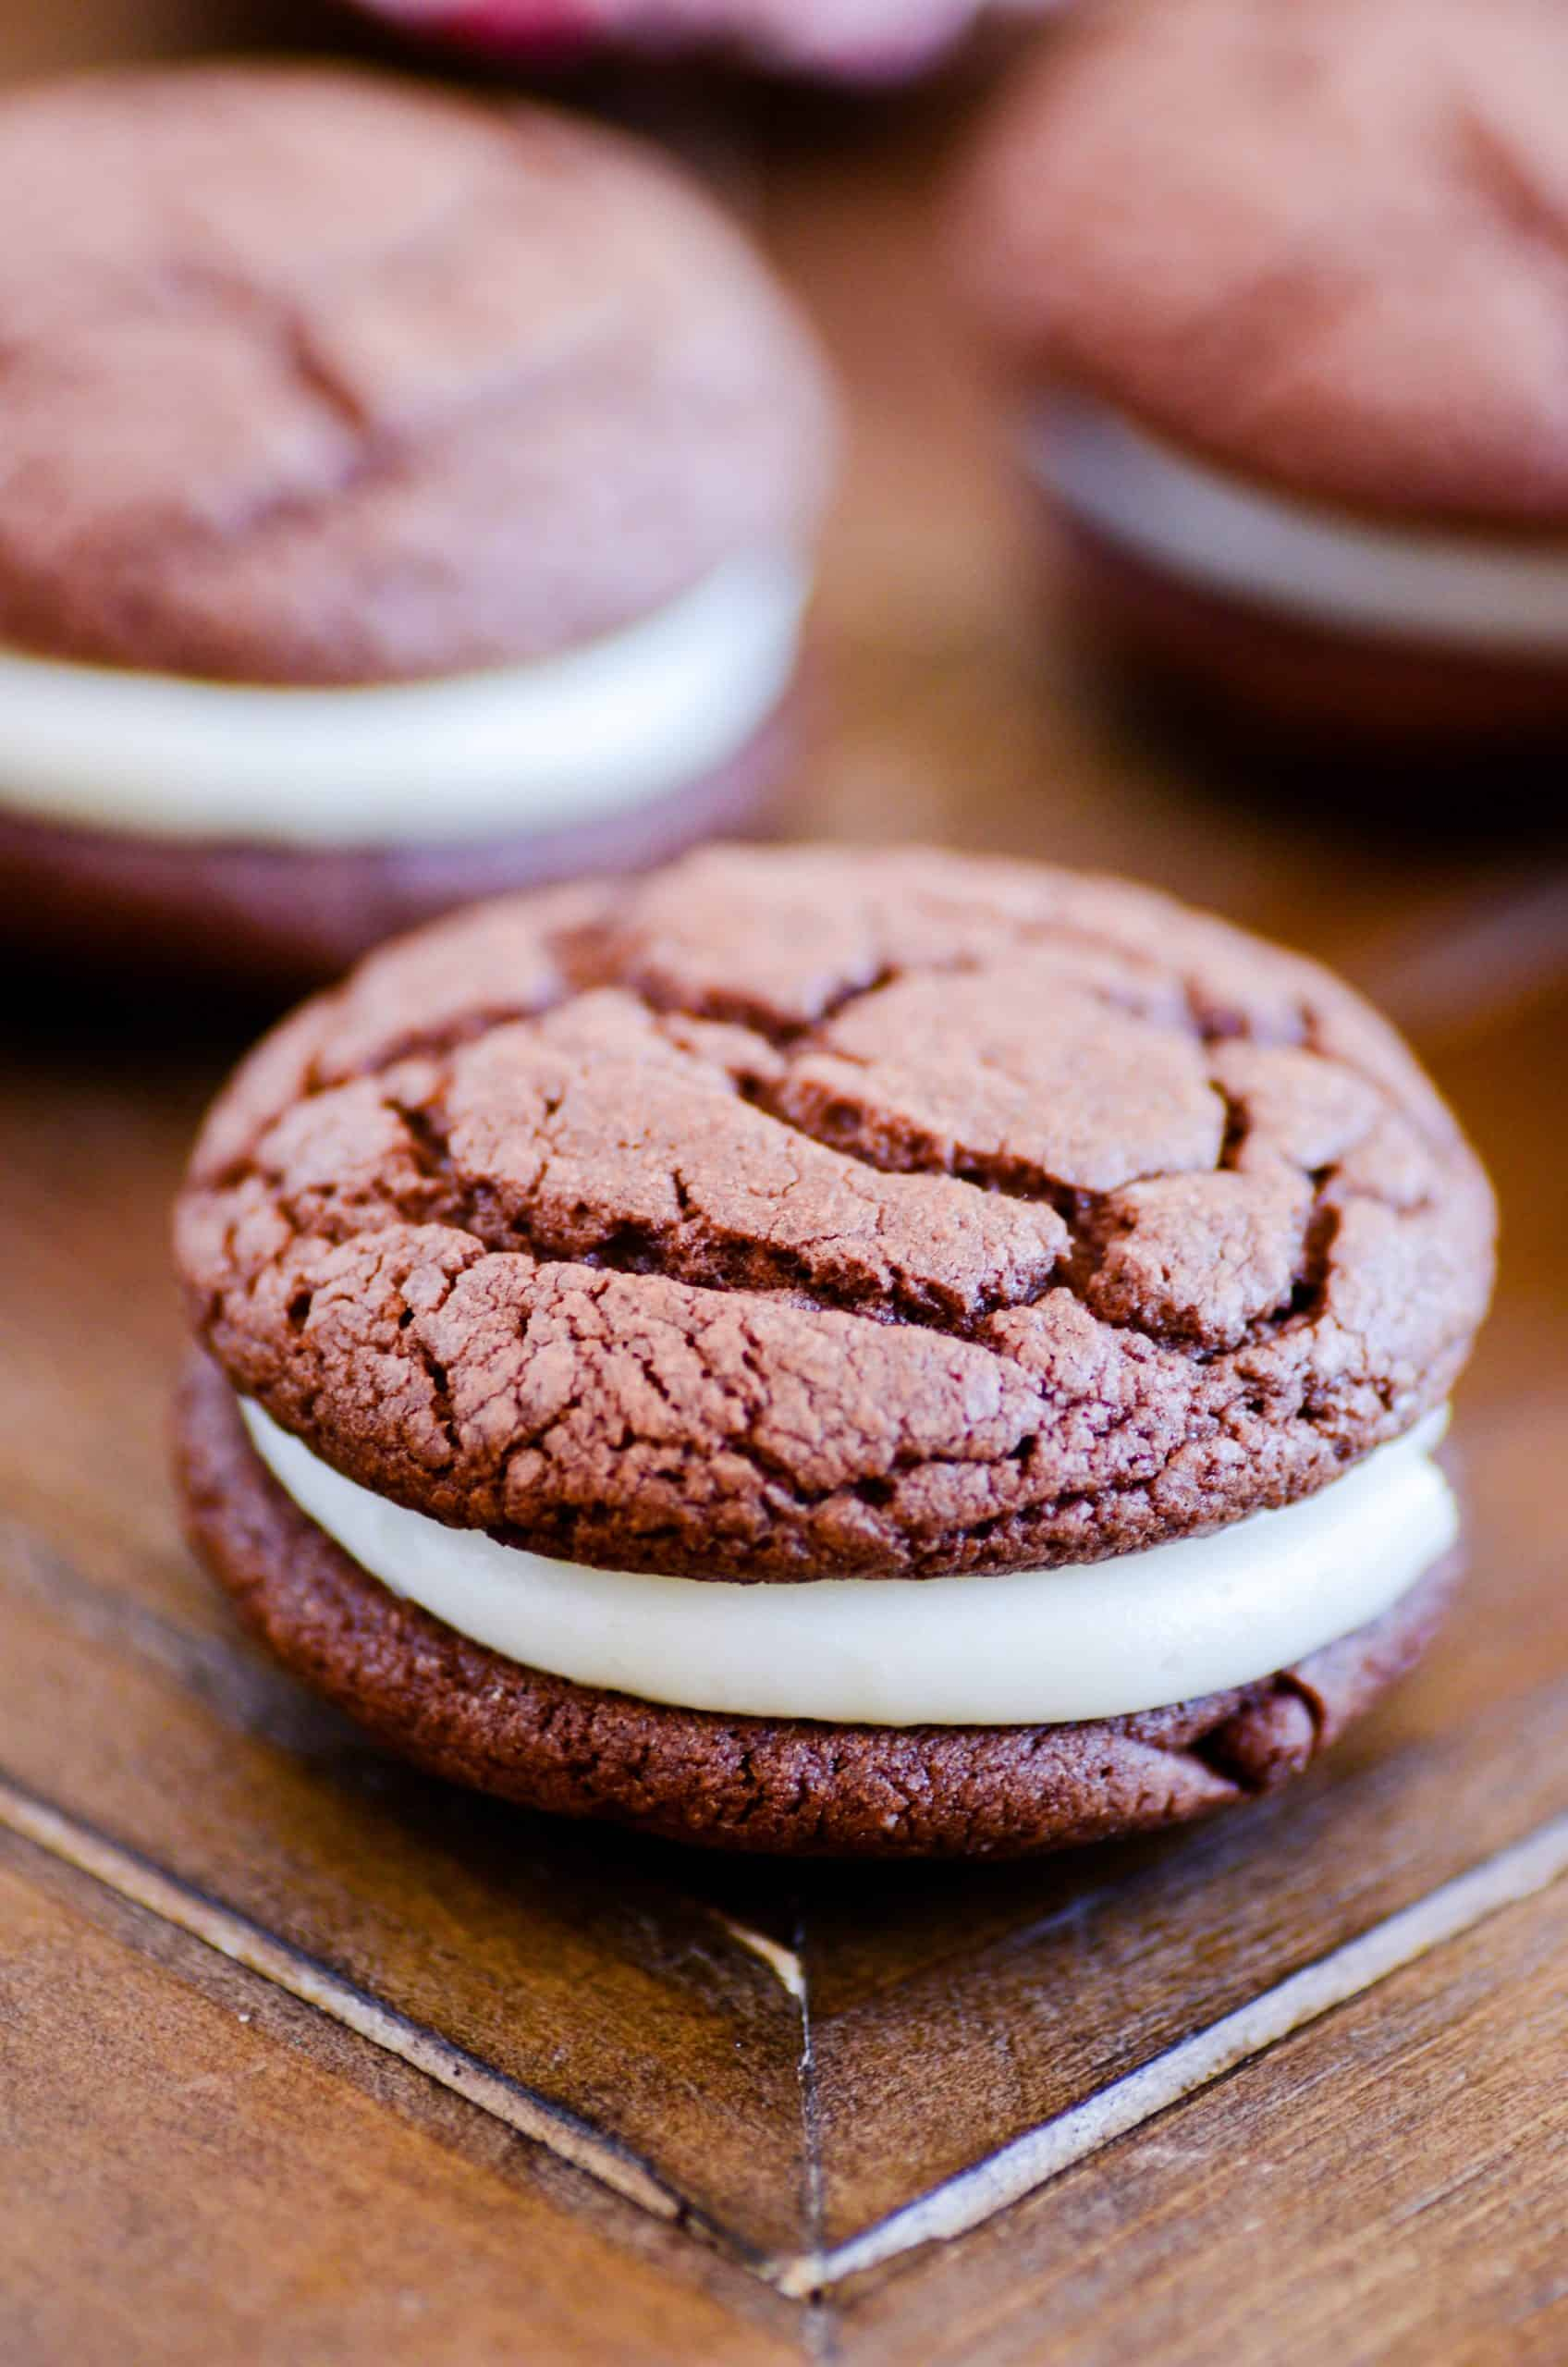 A delicious homemade version of your favorite chocolate sandwich. And you can make them peppermint-flavored too! Win-win :)